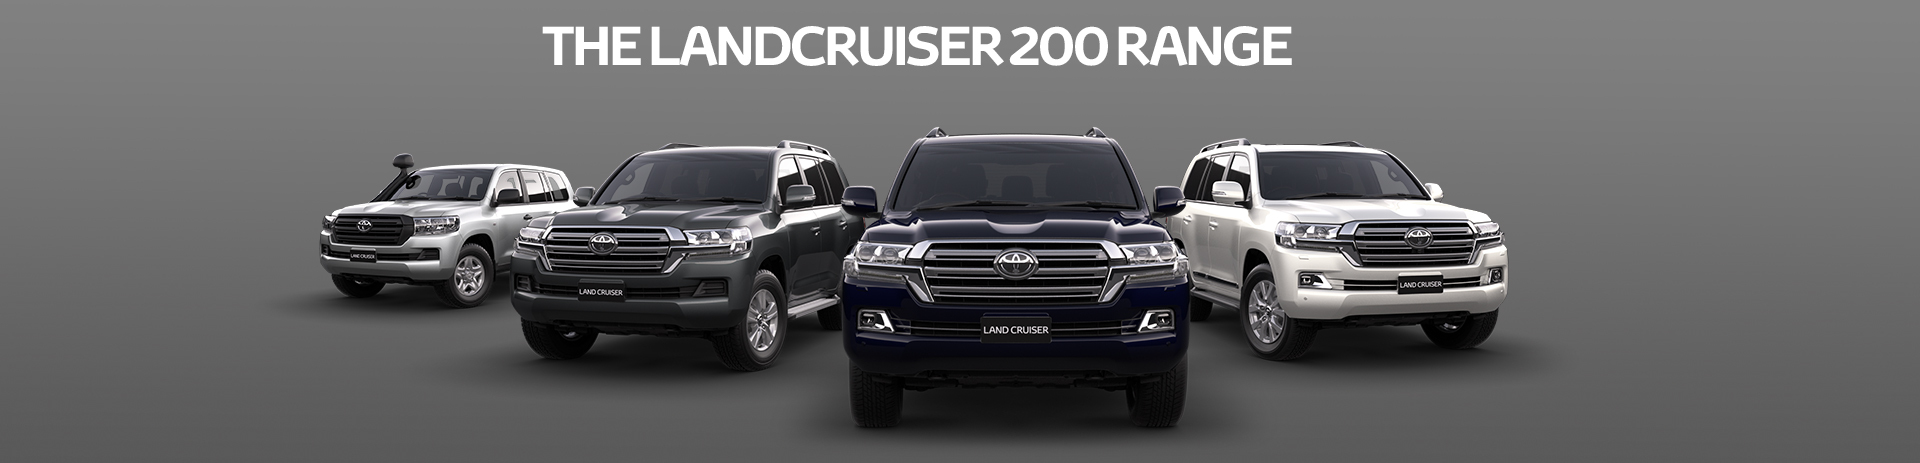 Check out the Landcruiser 200 Range!